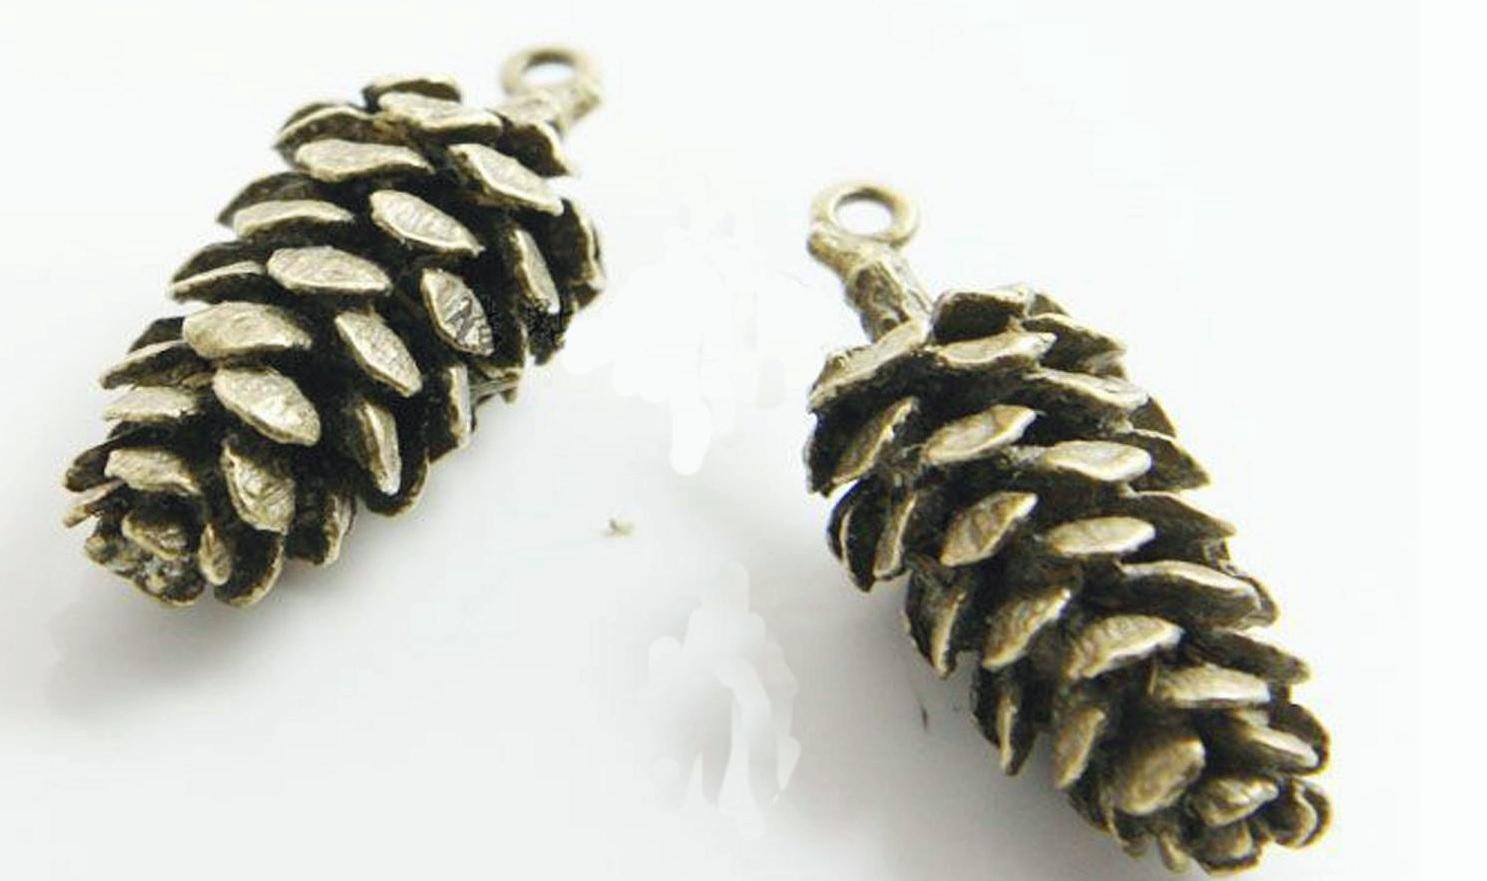 Antique Brass / Antique Silver Alloy Pendants - Pinecone - 15mmx41mm - 3 PCS (JP271)